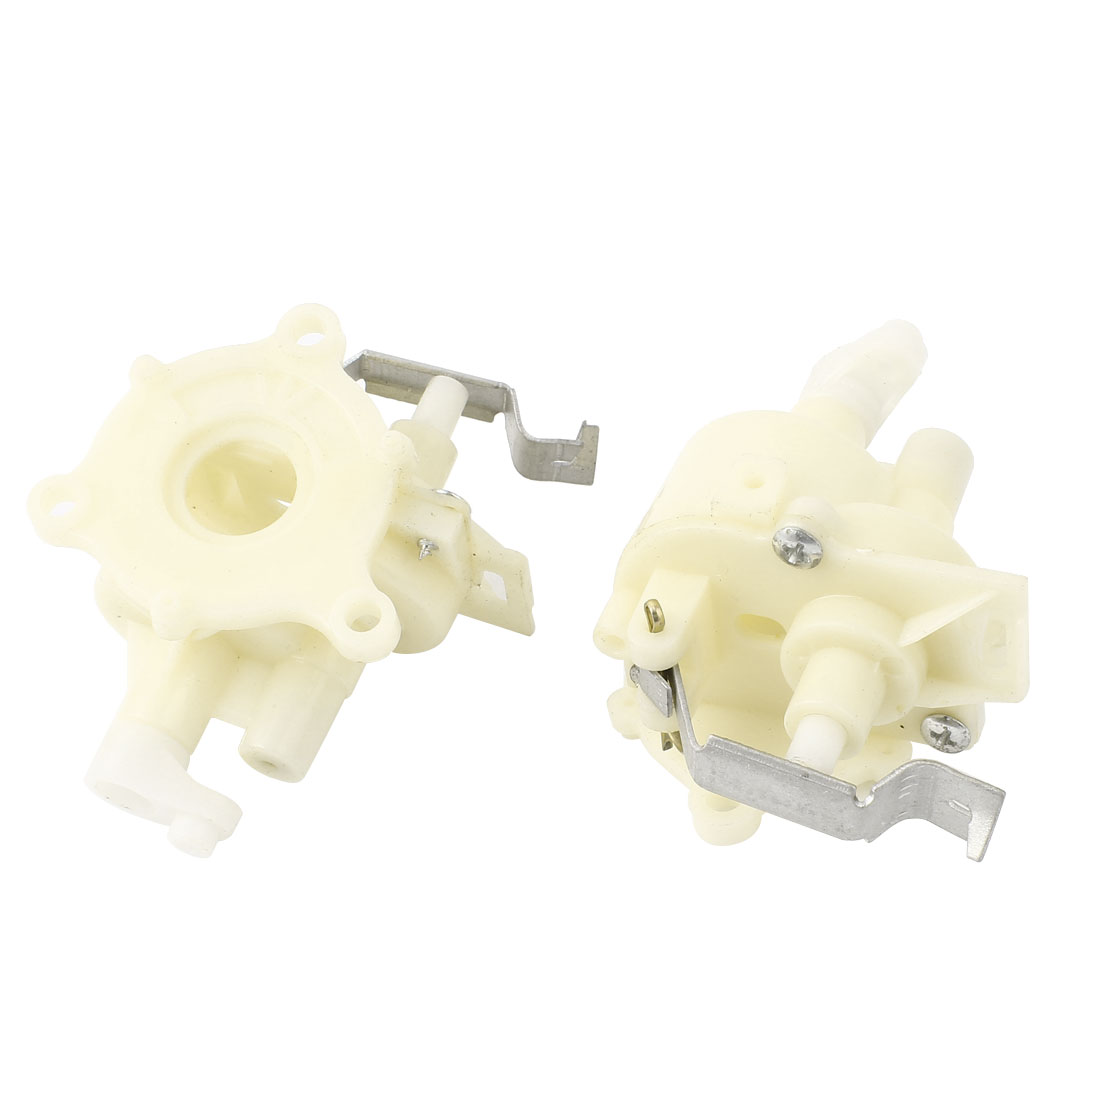 2Pcs Off White Electric Wall Fan Repair Parts 5.5mm Mounted Hole Gear Box for Midea